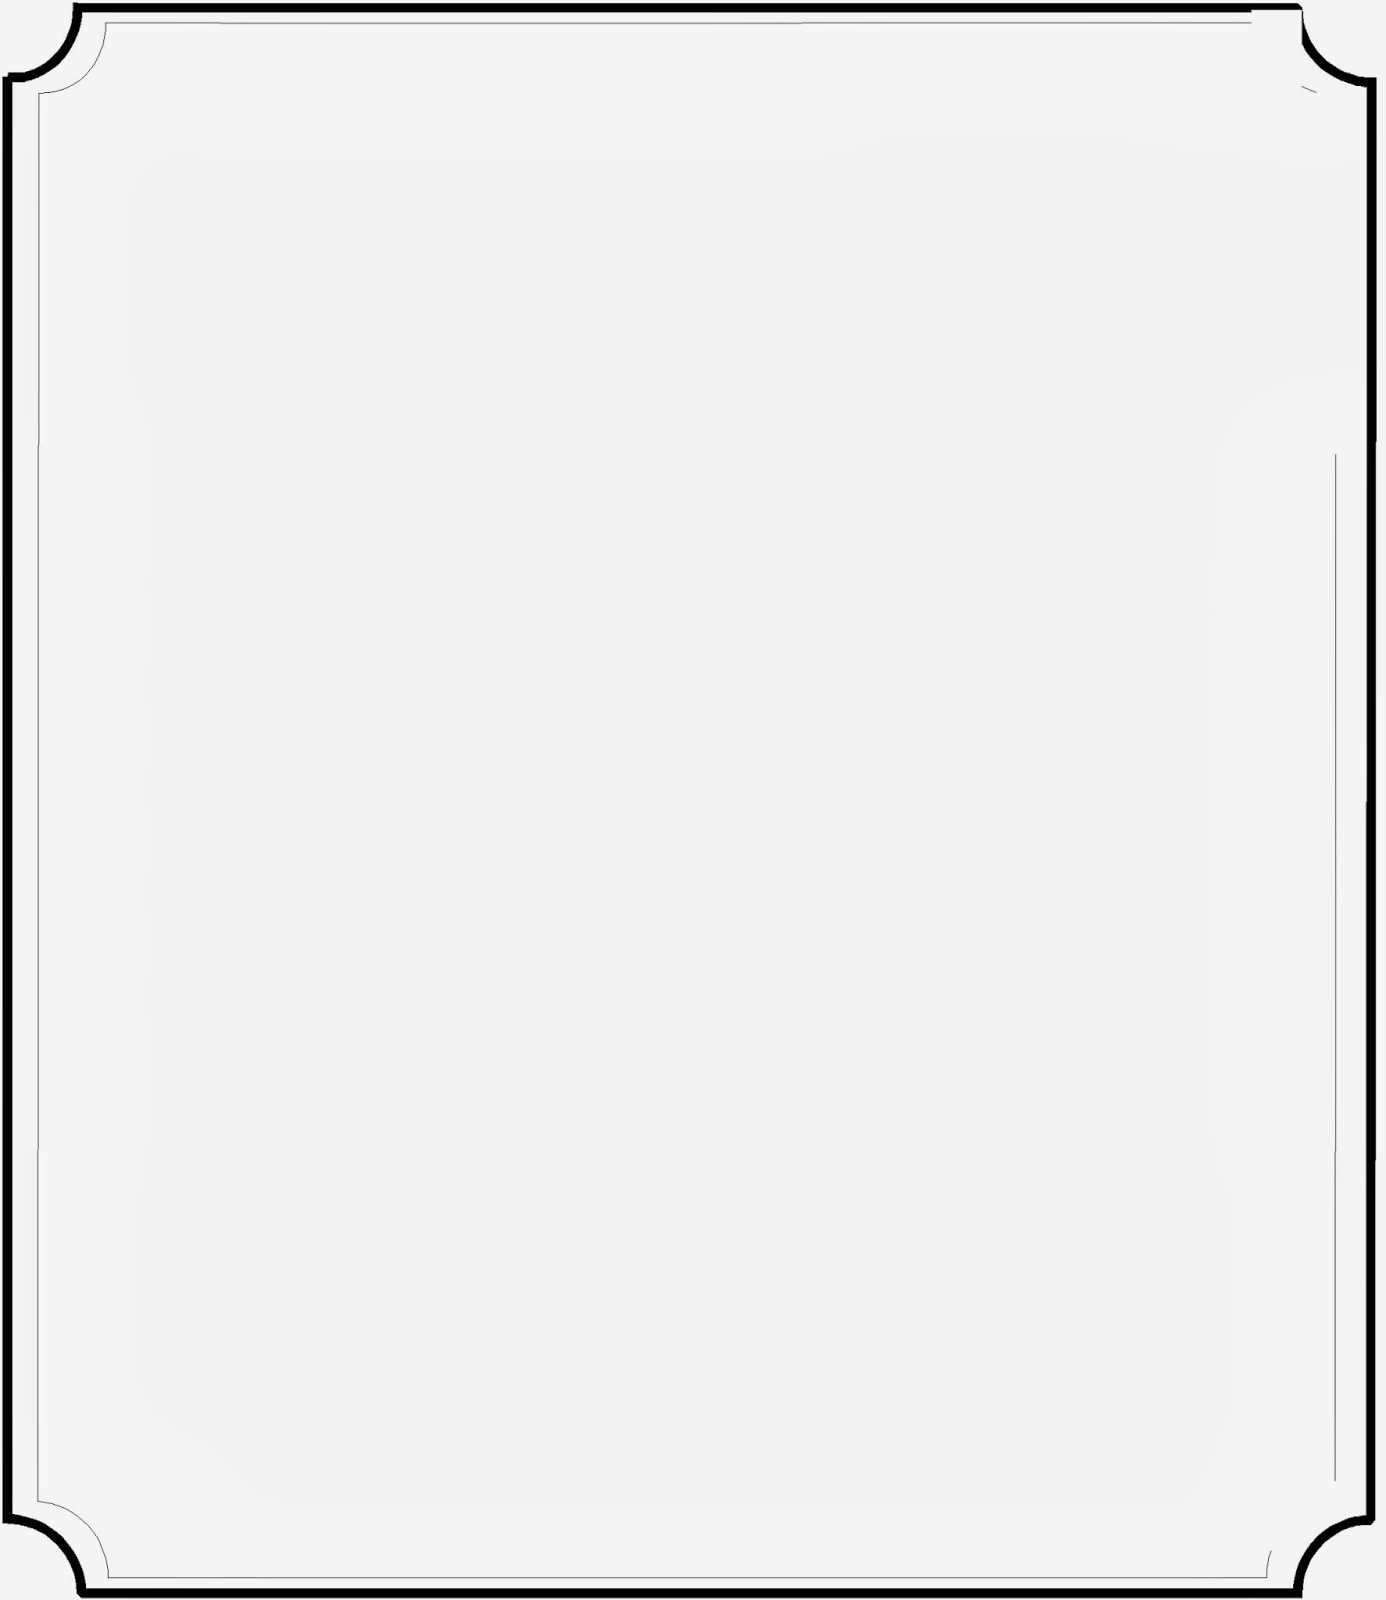 Line White Best Collection Store Page Border Line Art Black And White